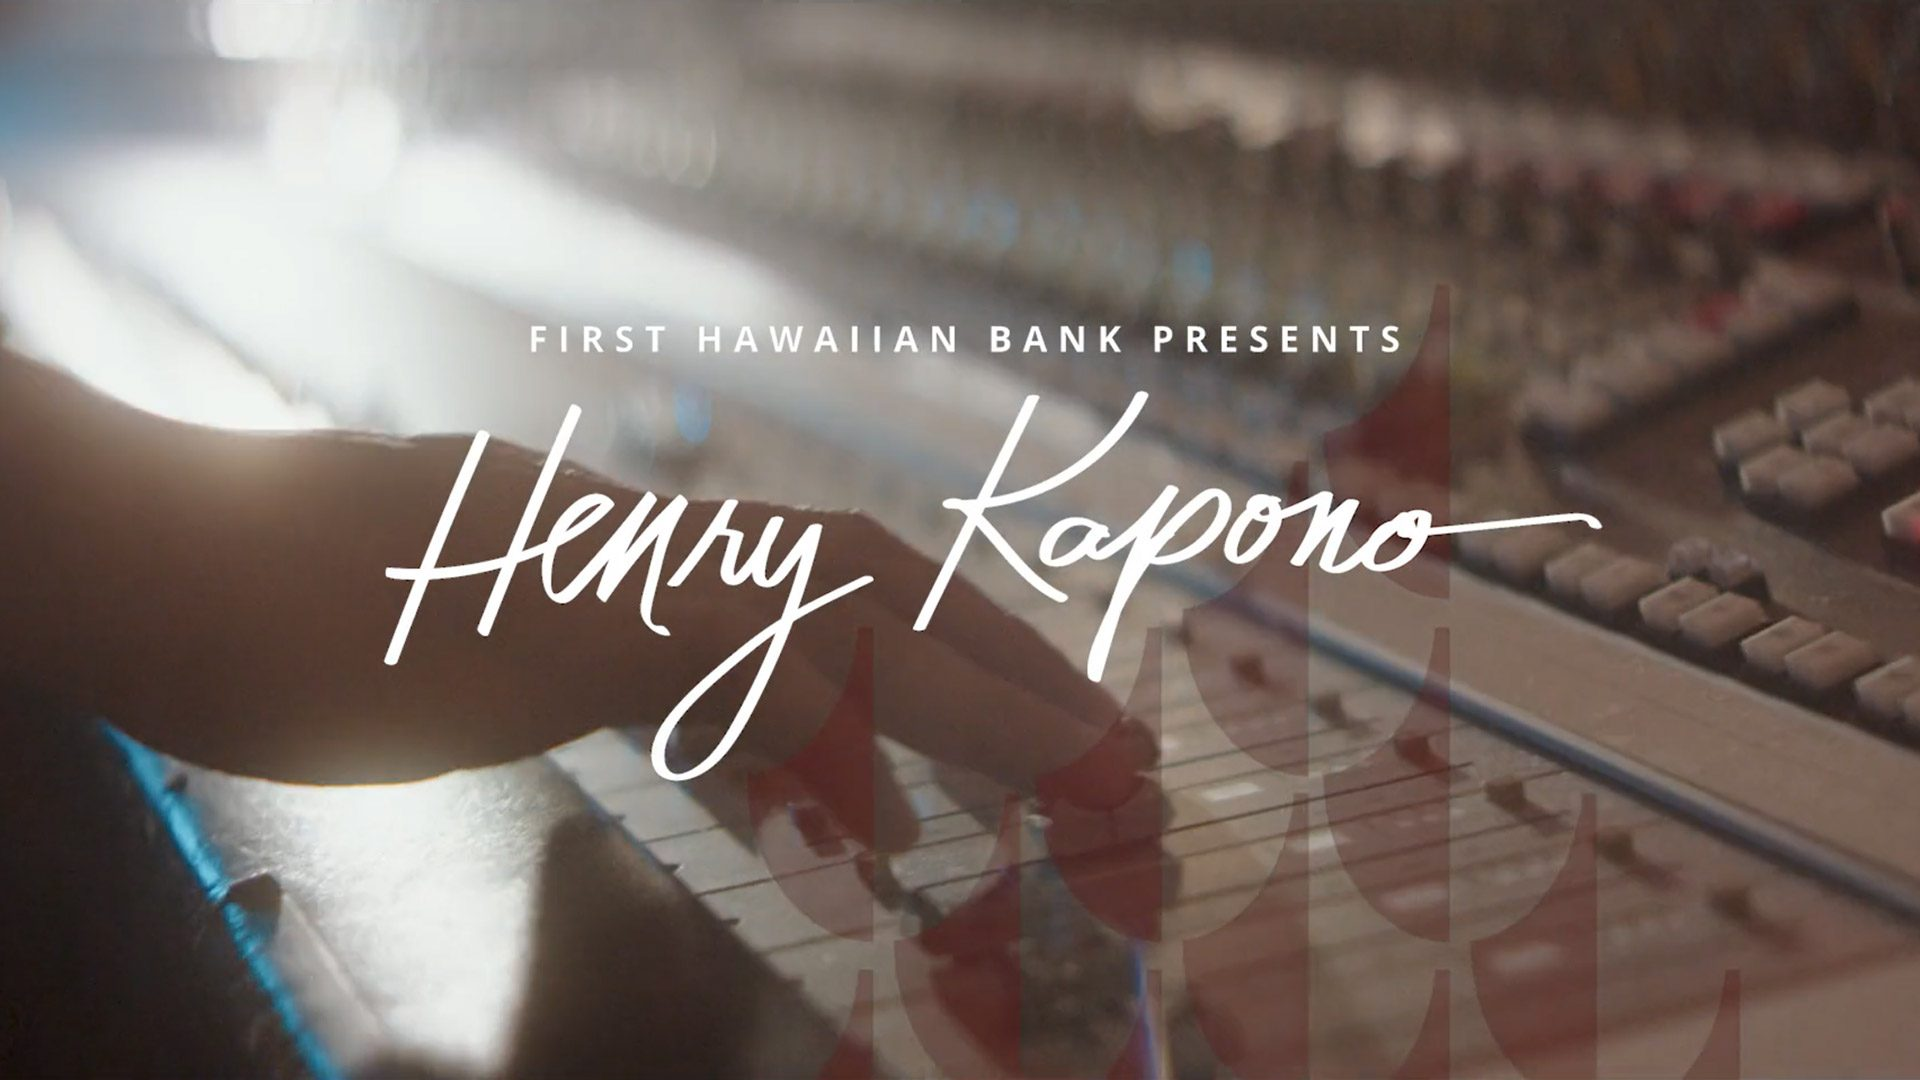 First Hawaiian Bank: Small Business Banking with Henry Kapono (Full)